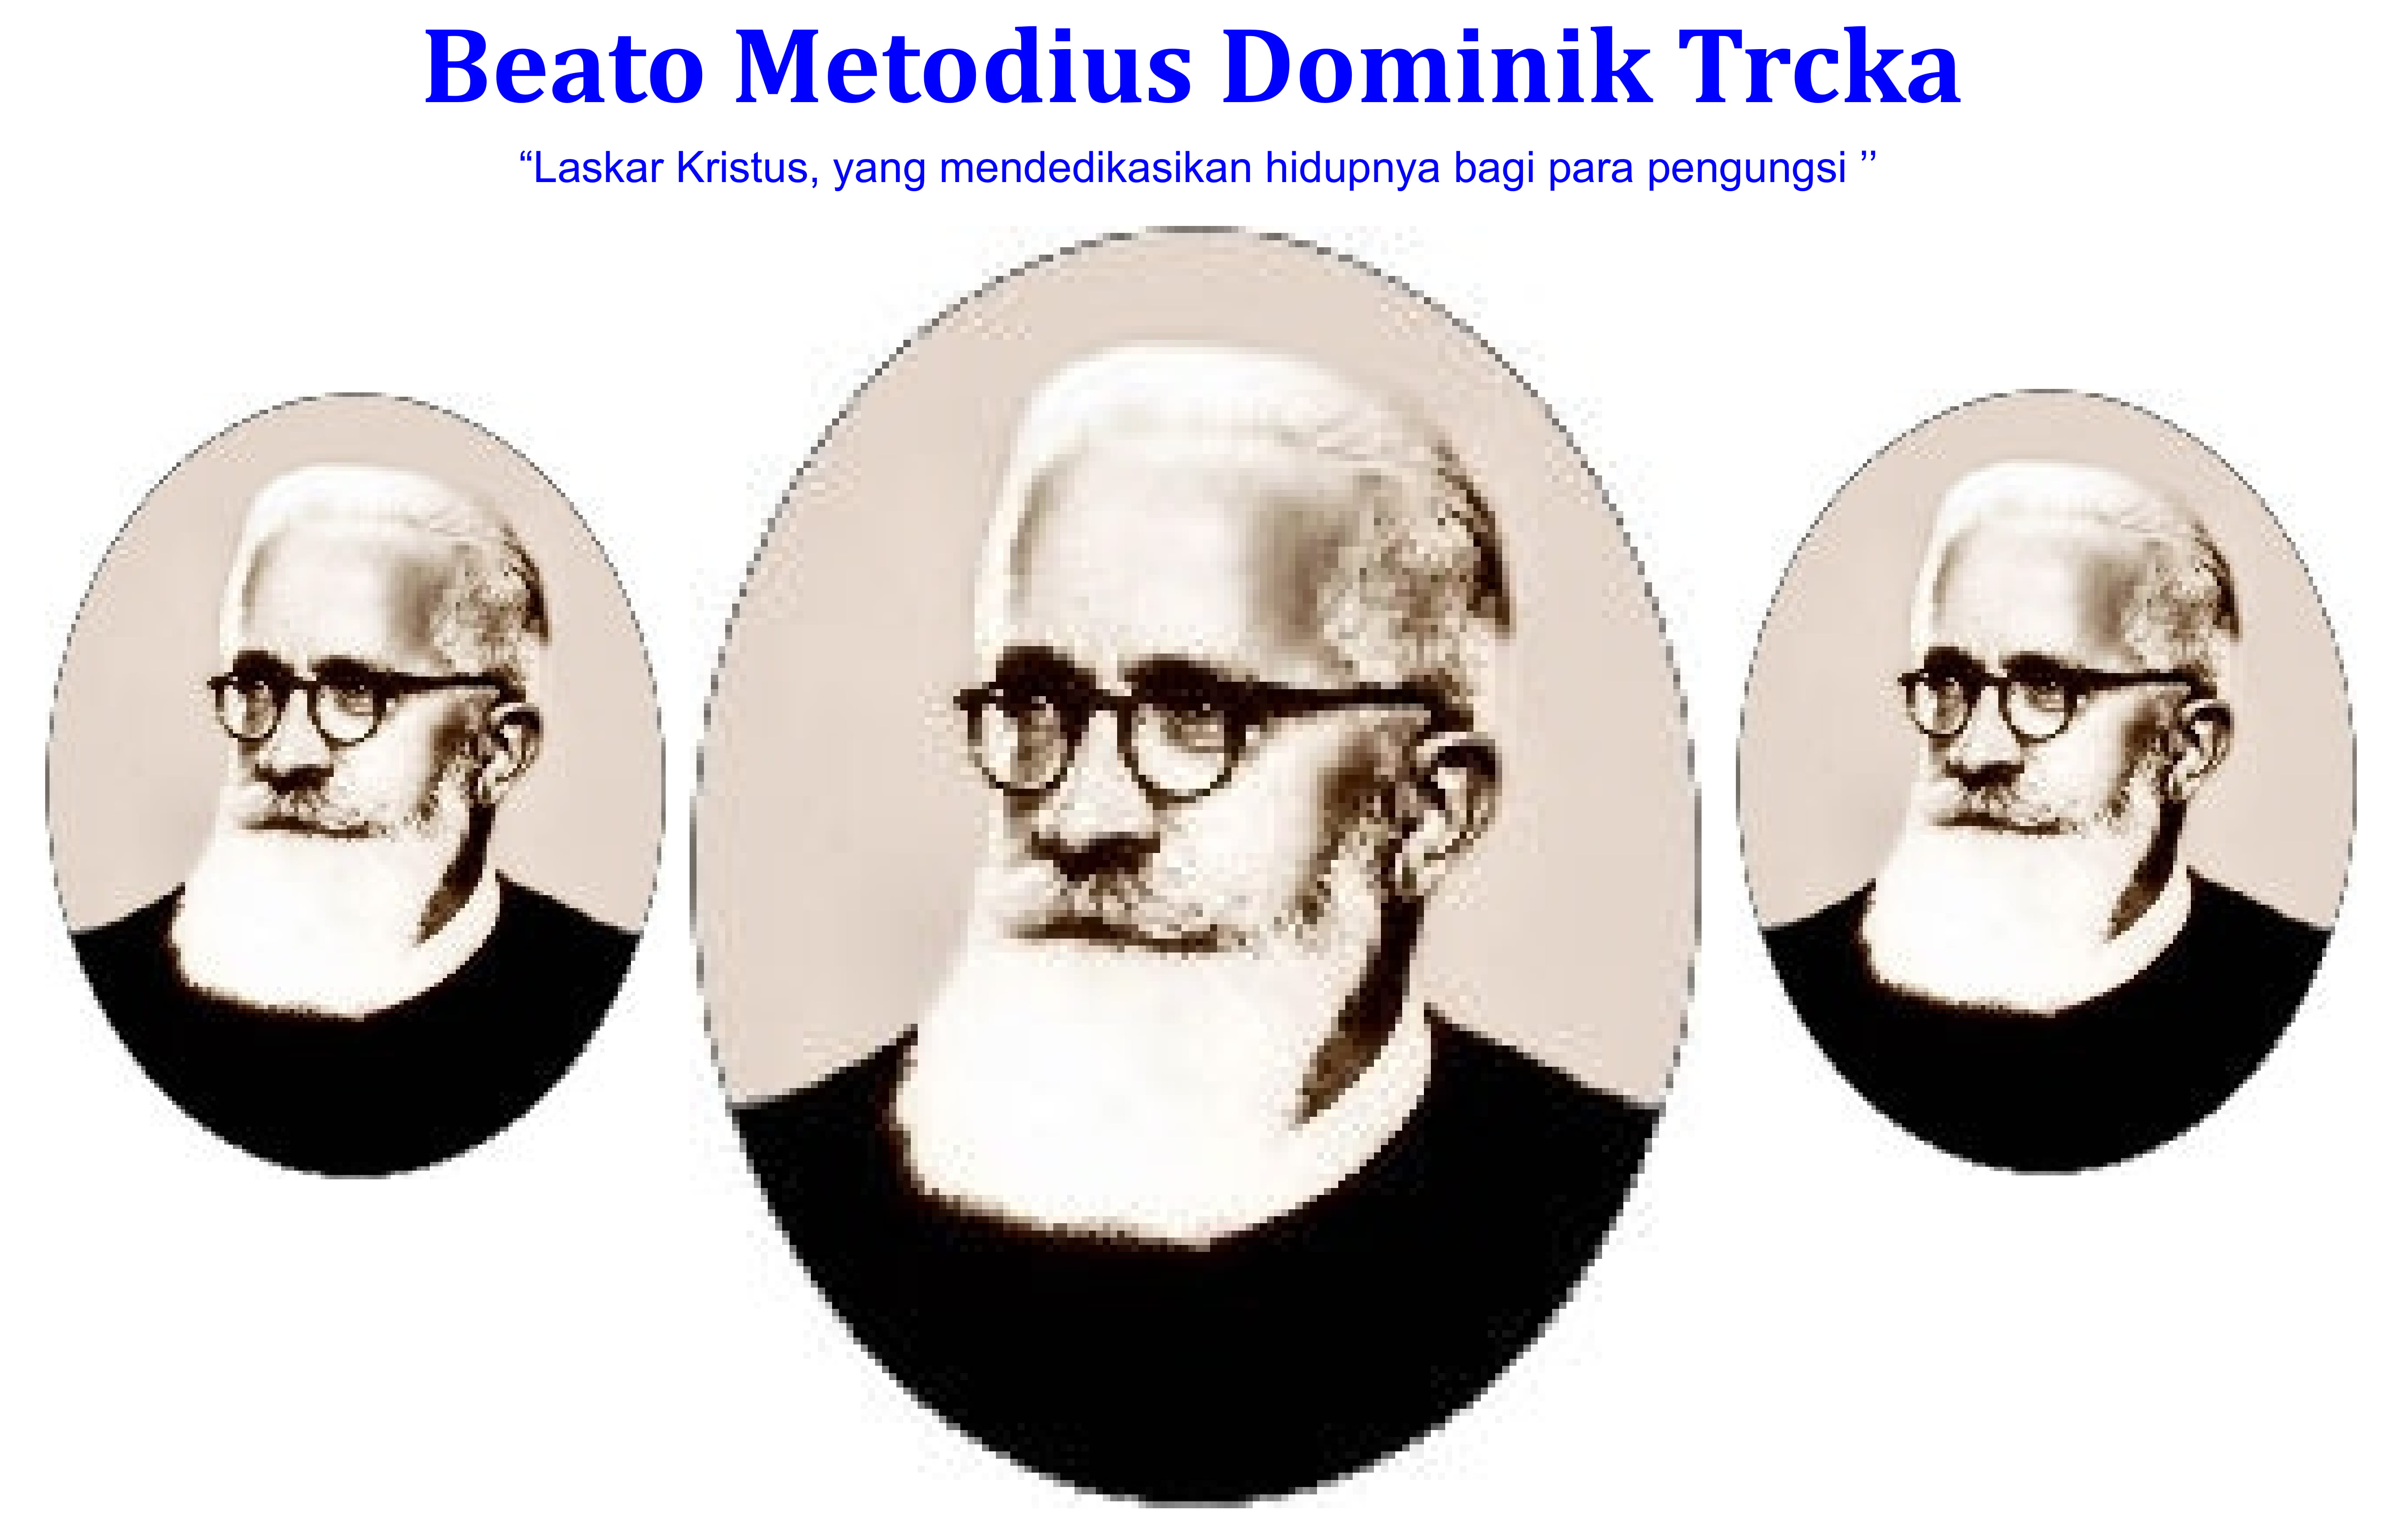 Beato Methodius Dominic Trcka